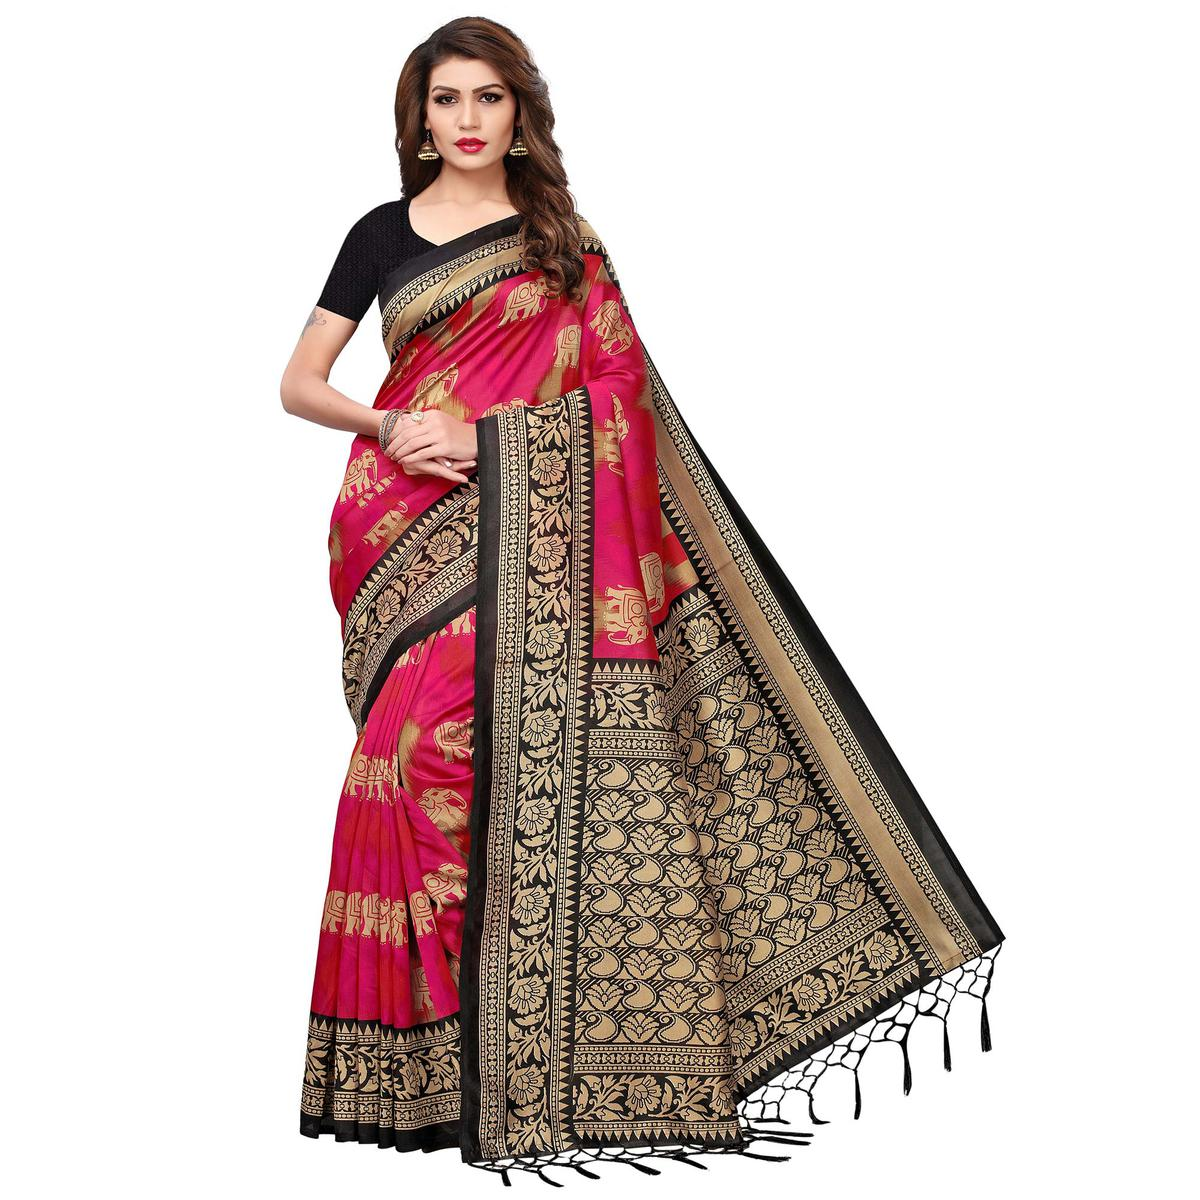 Eye-catching Deep Pink Colored Festive Wear Printed Mysore Silk Saree